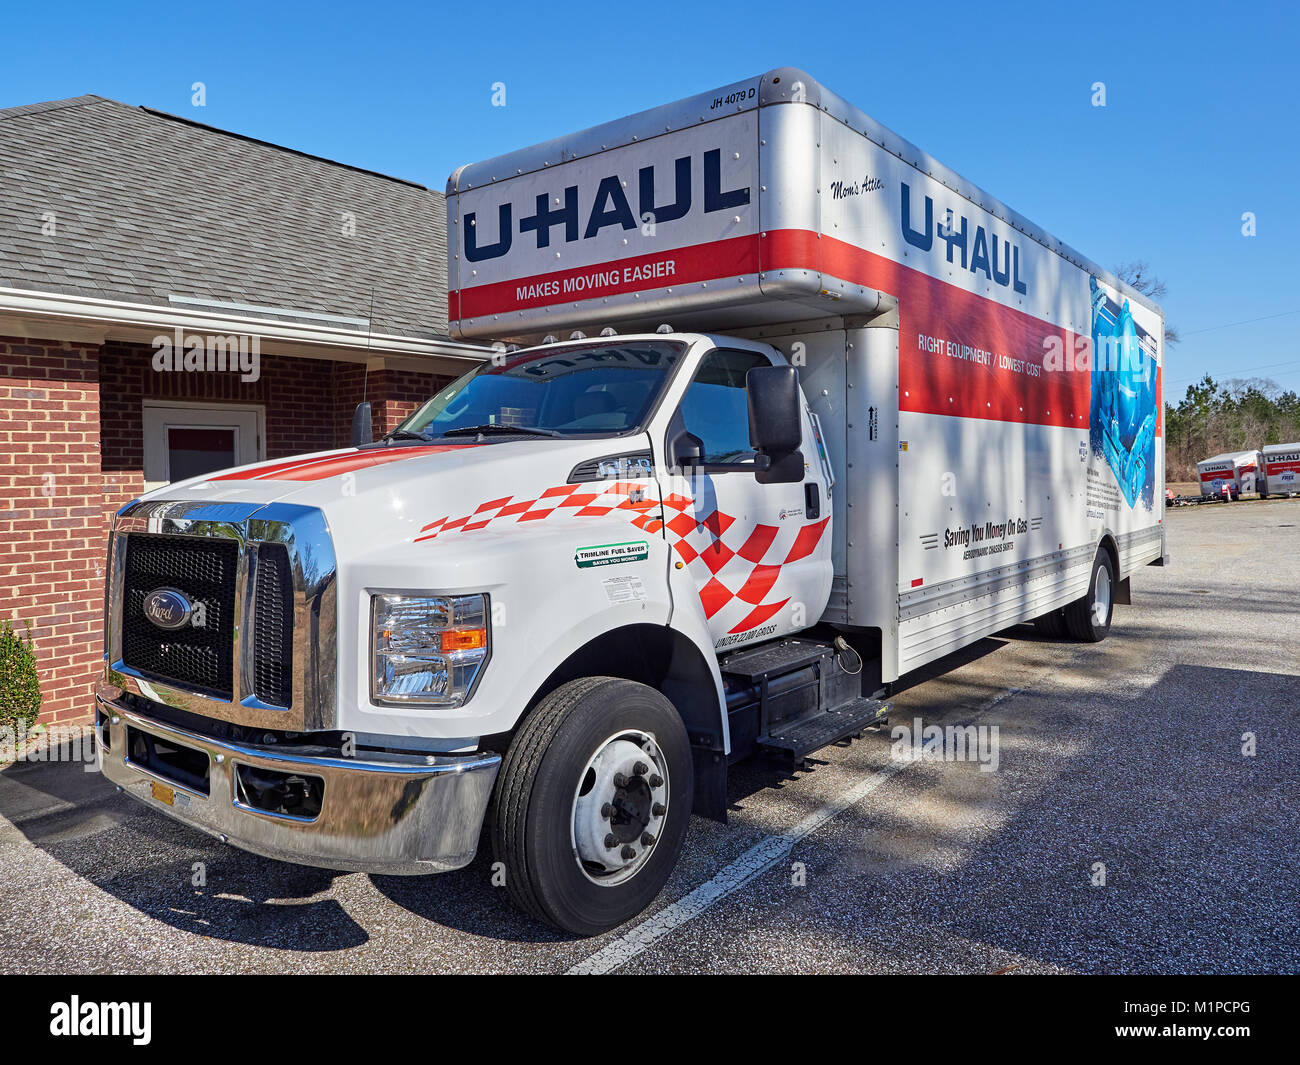 front of large 26 foot uhaul rental moving truck or van used for a